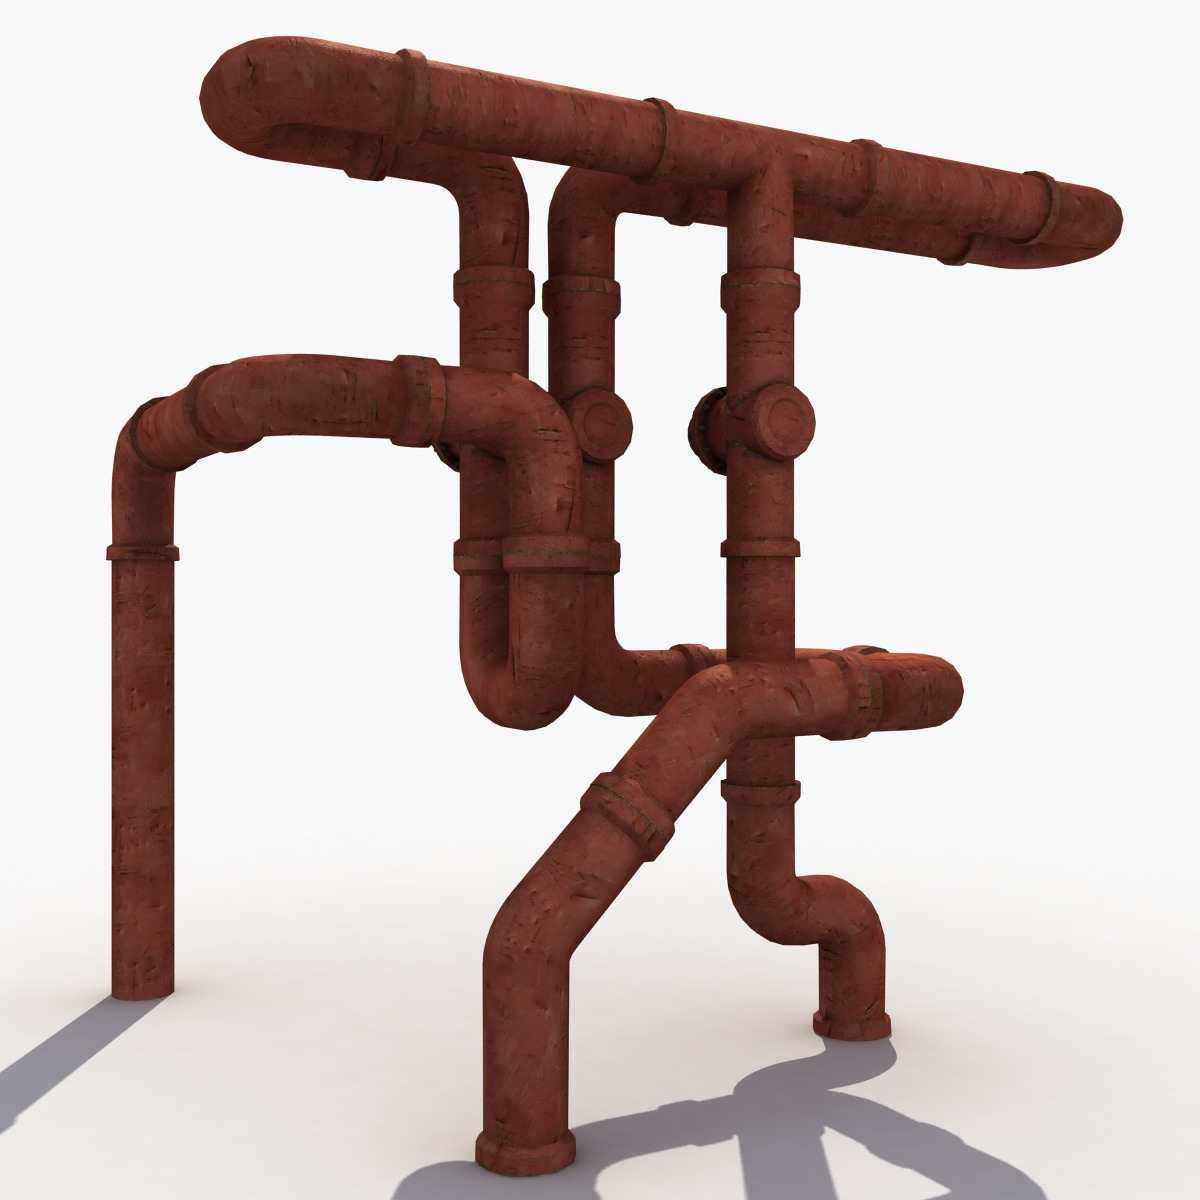 Constructor Pipe System